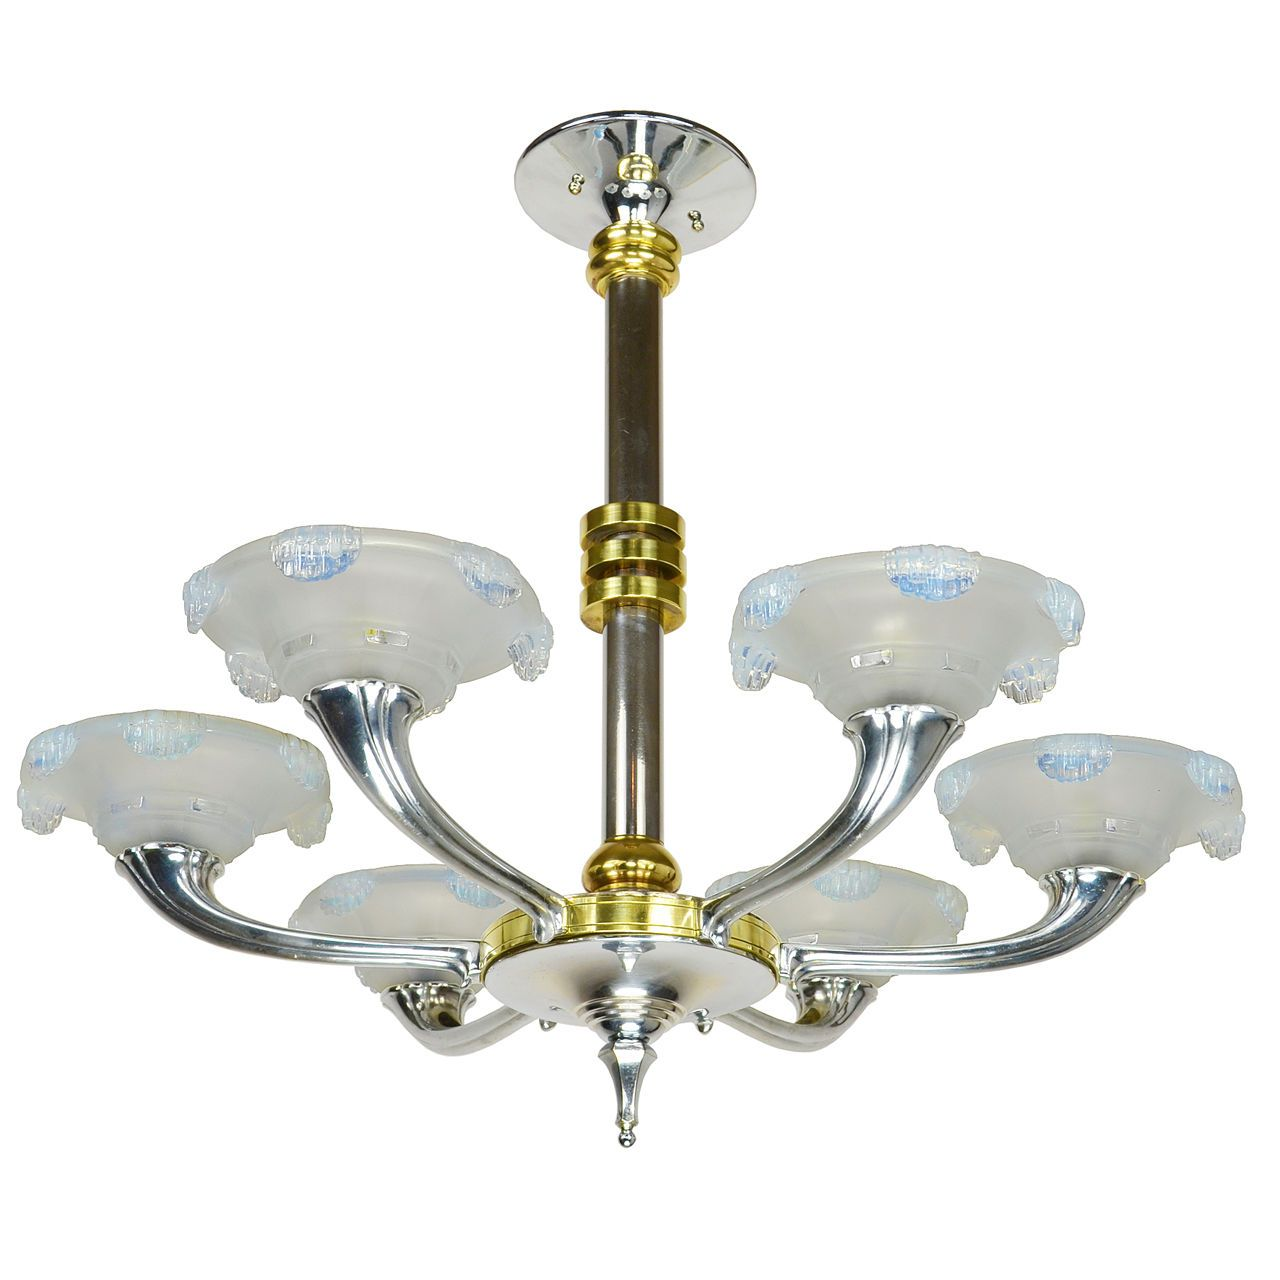 Streamline art deco antique french chandelier circa 1930 led rewired streamline art deco antique french chandelier ca 1930 rewired w led ant 496 ebay arubaitofo Images